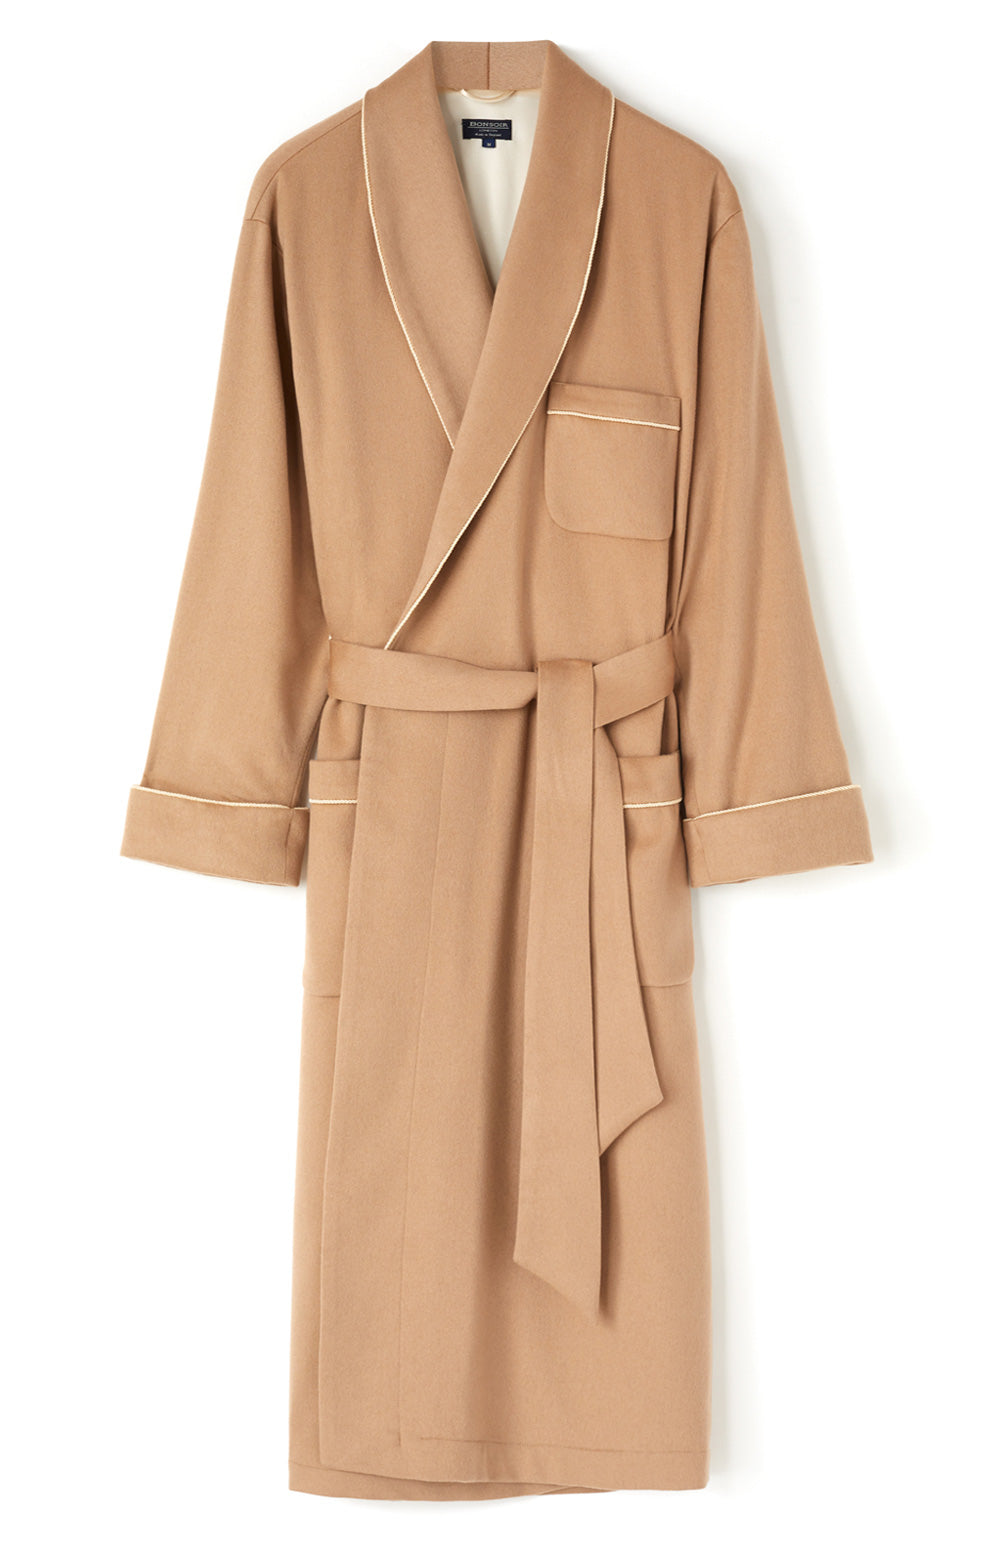 Luxury Camel Silk Lined Cashmere Robe | Bonsoir of London